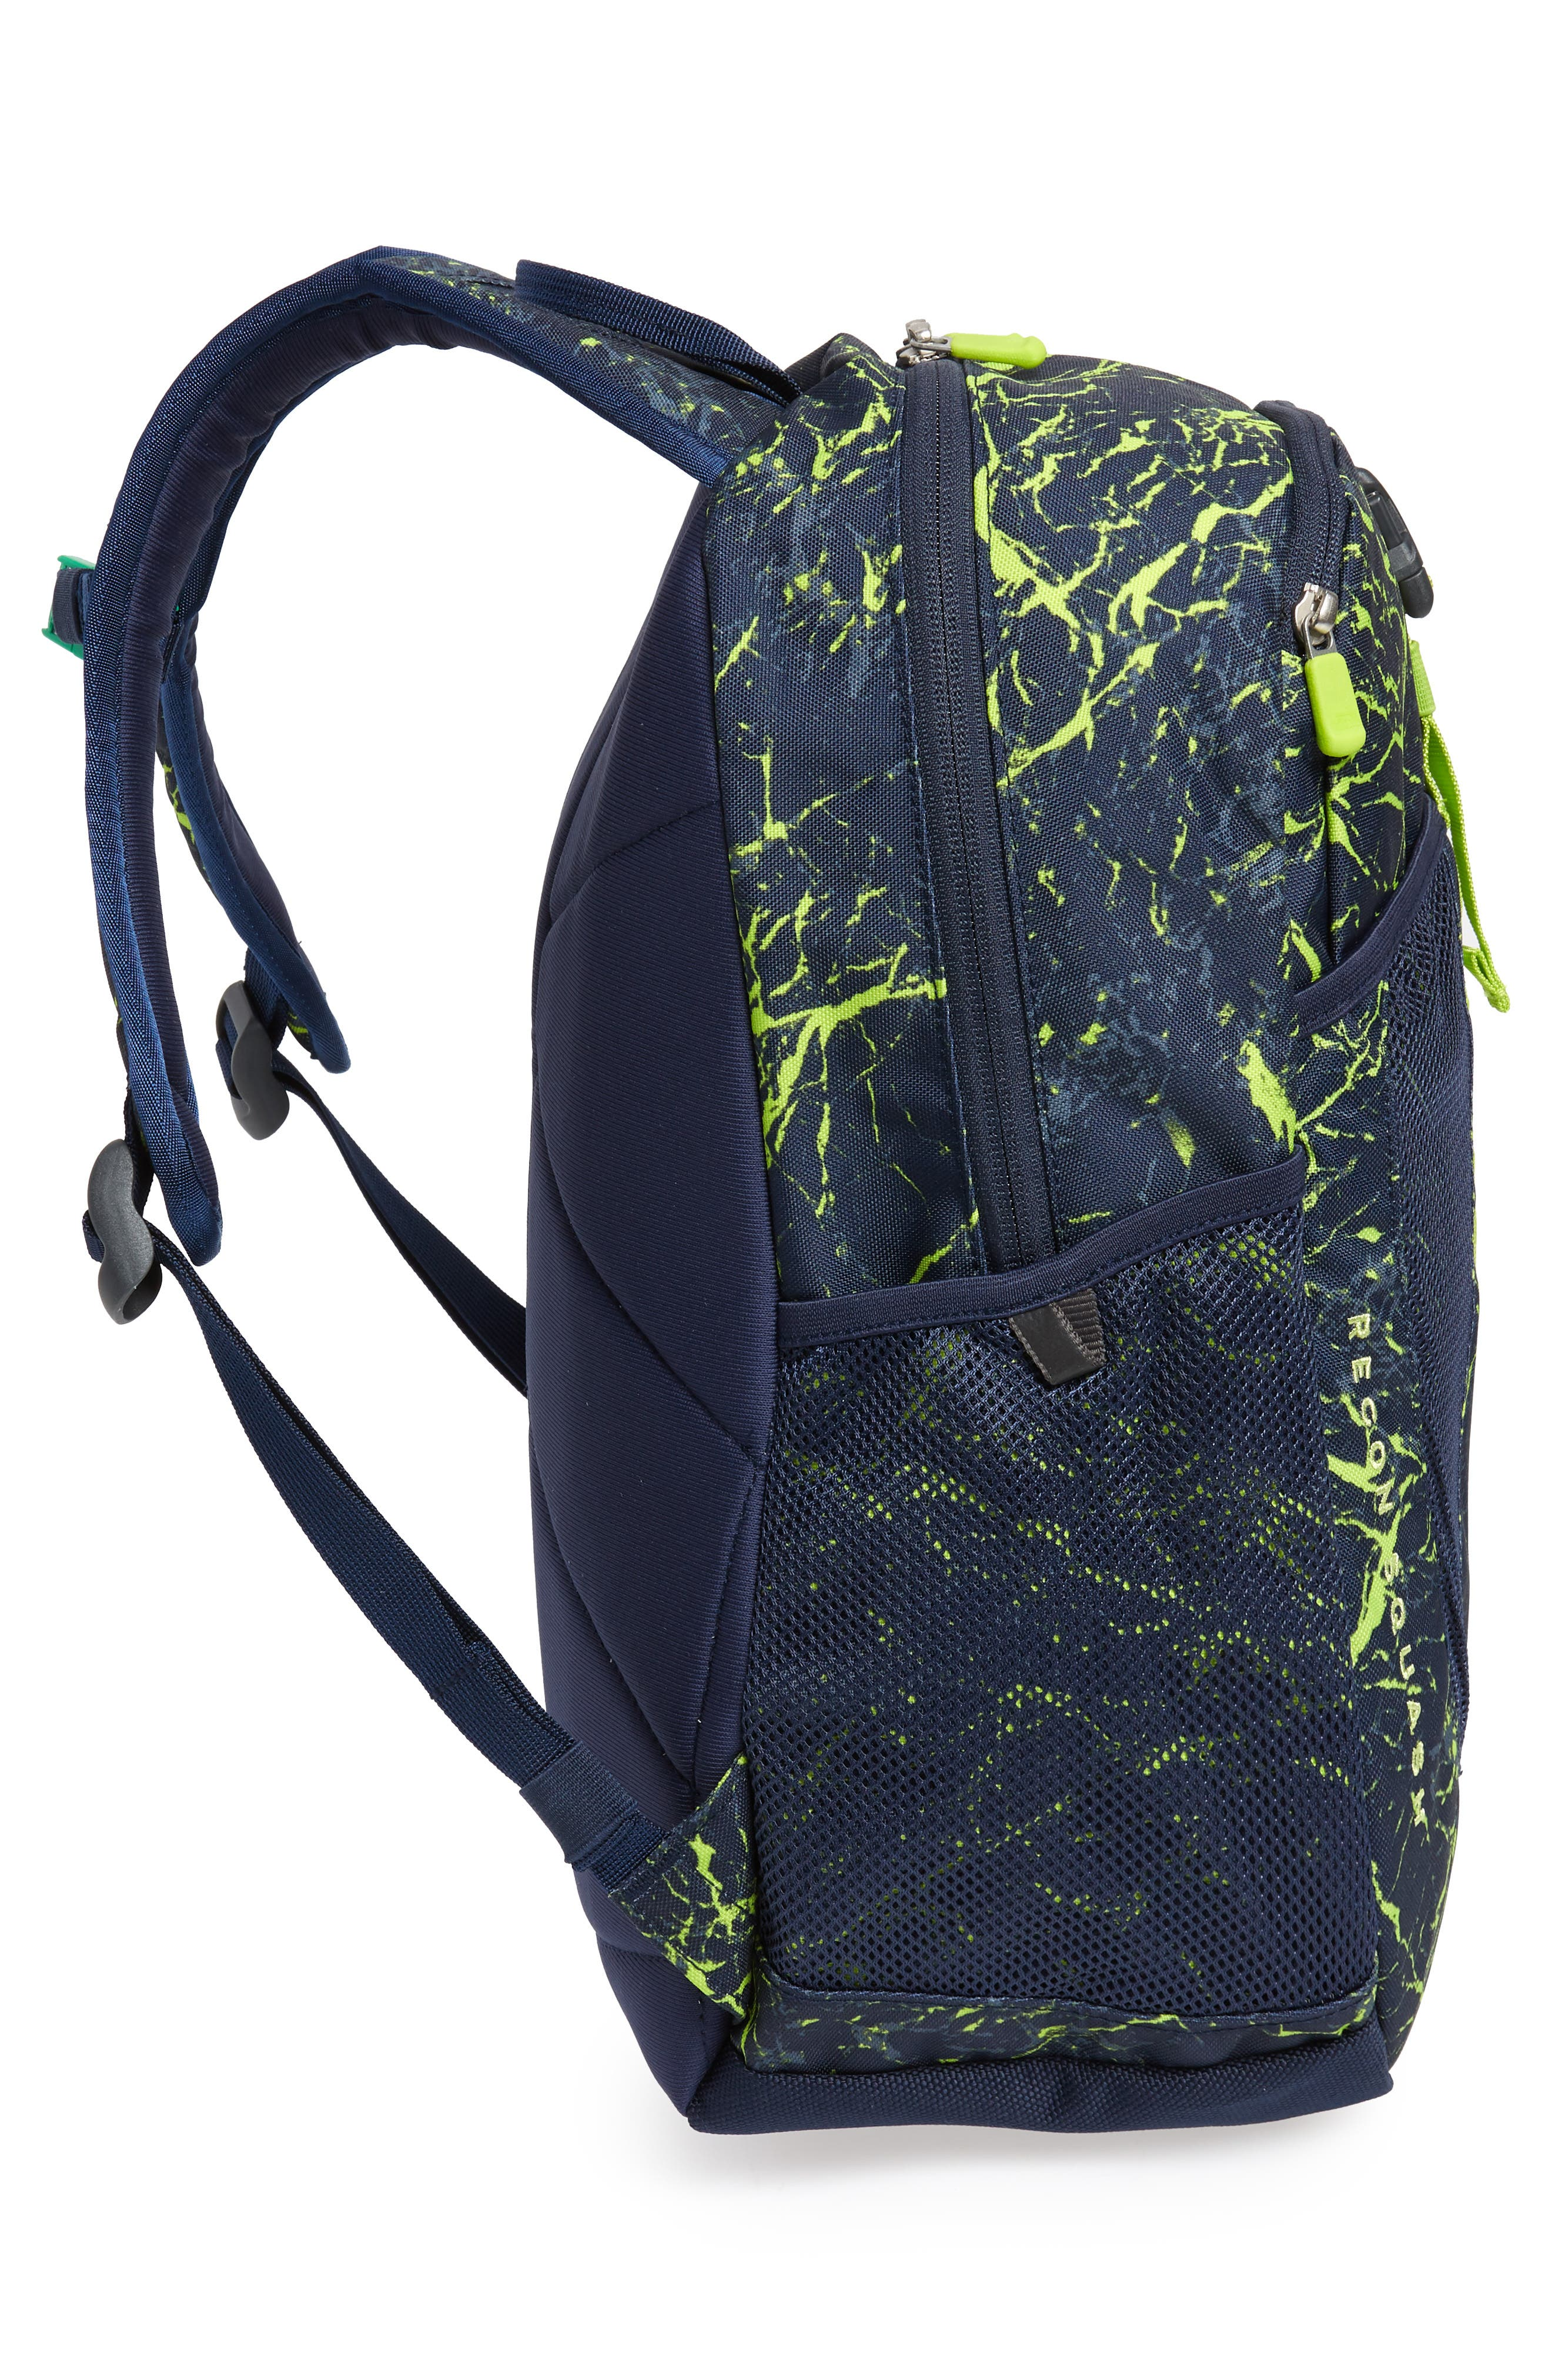 Recon Squash Backpack,                             Alternate thumbnail 4, color,                             401